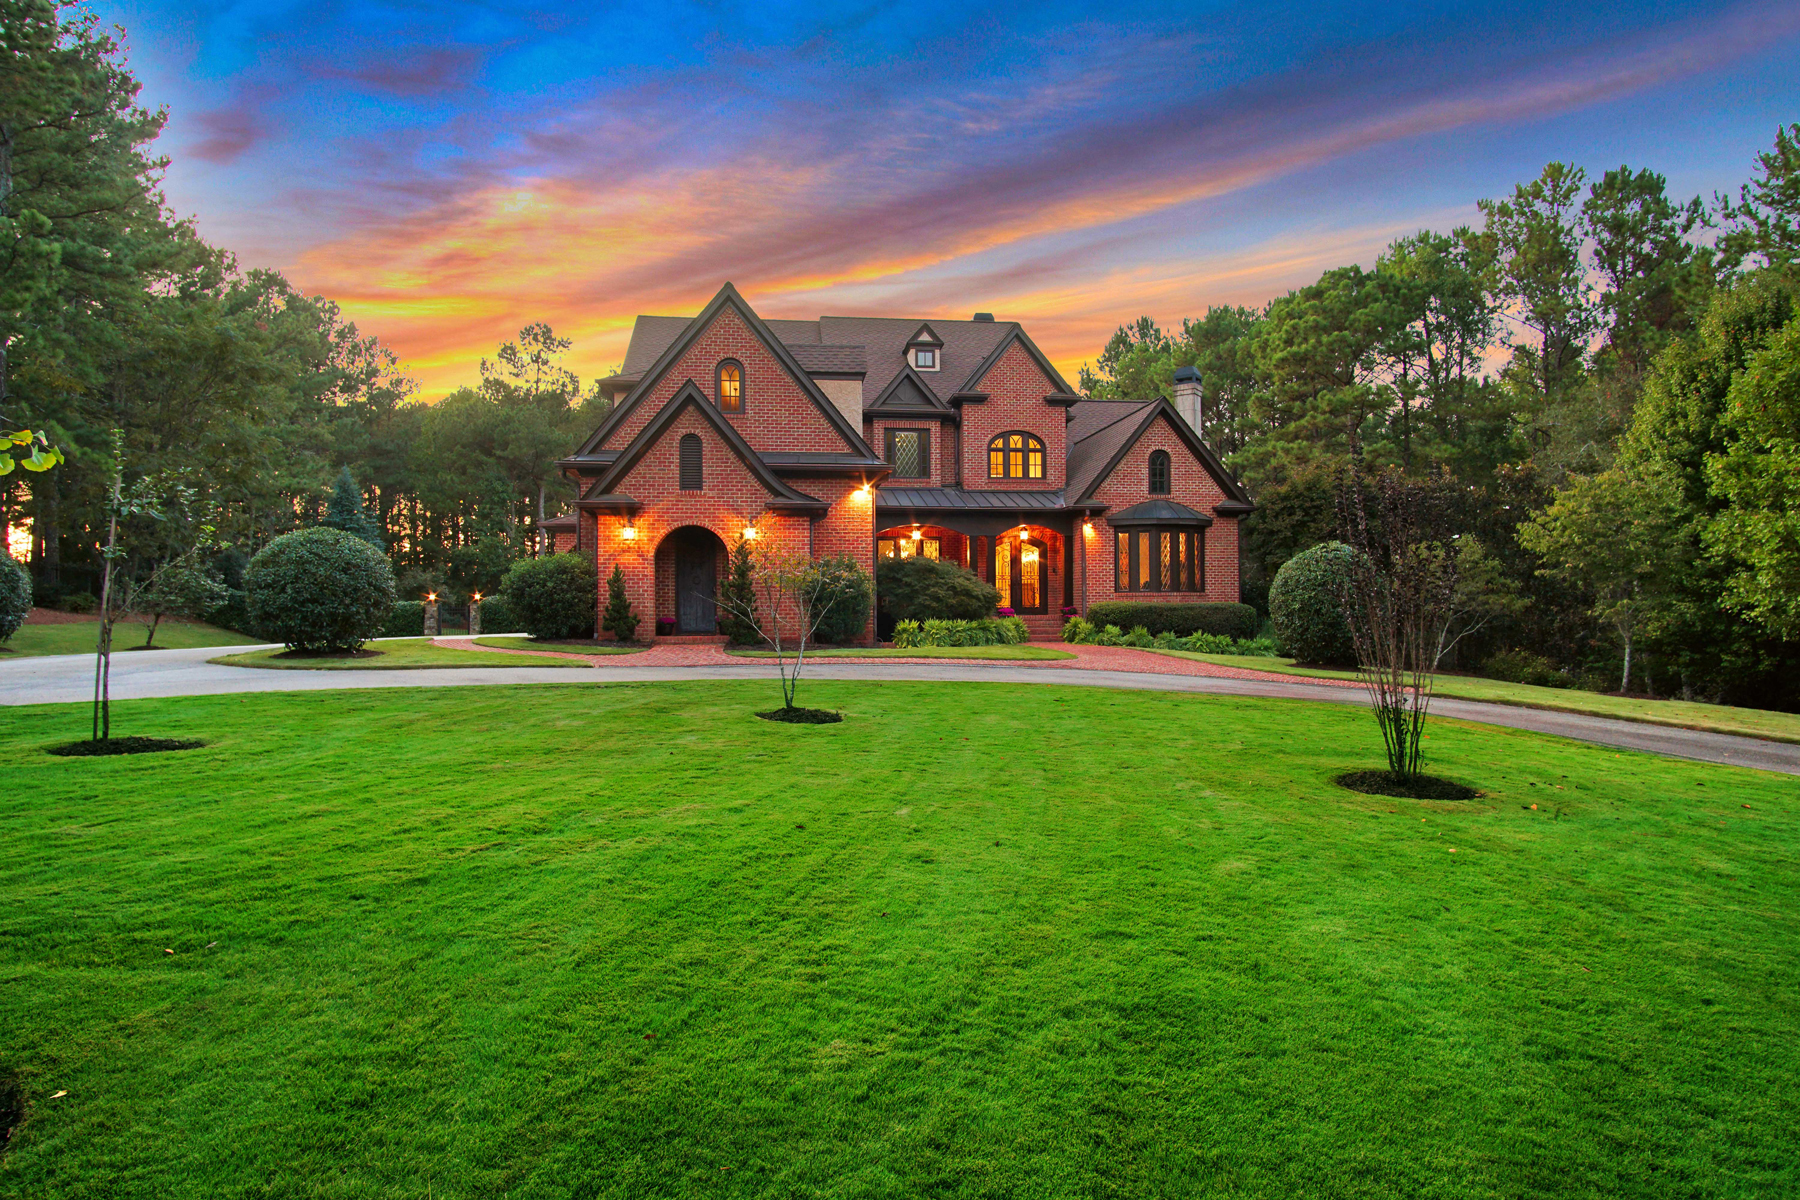 Single Family Homes for Active at Elegant Custom Home In Crystal Hills 1070 Tulipwood Lane Athens, Georgia 30606 United States